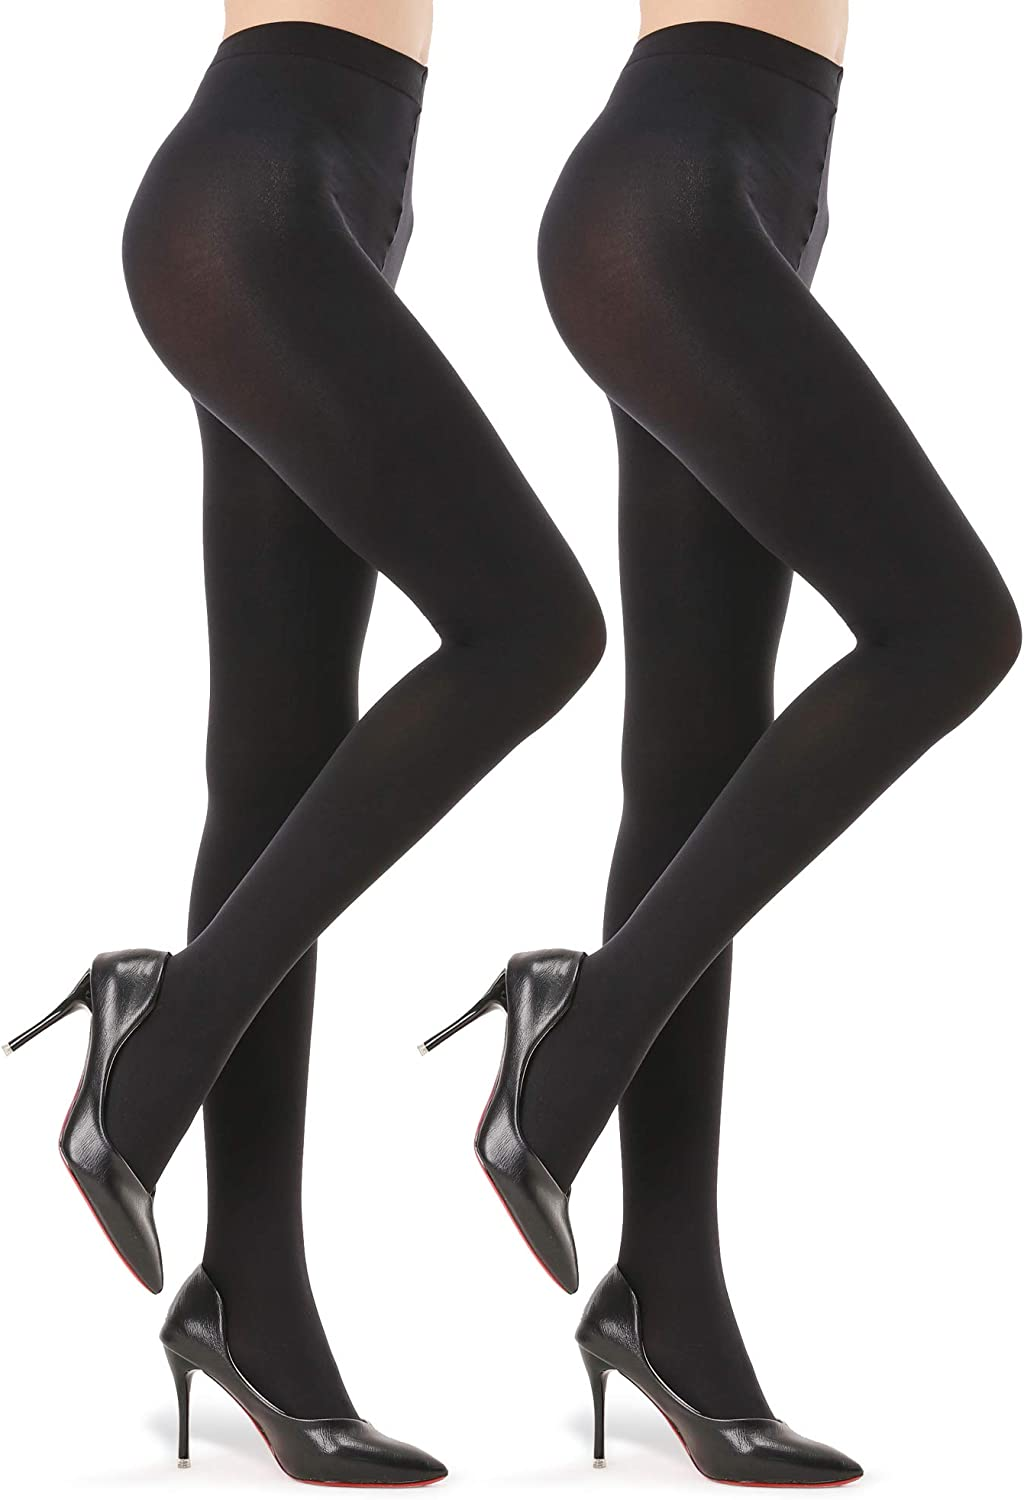 2 Pairs Opaque Tights for Women - 40D/70D Microfiber Control Top Pantyhose